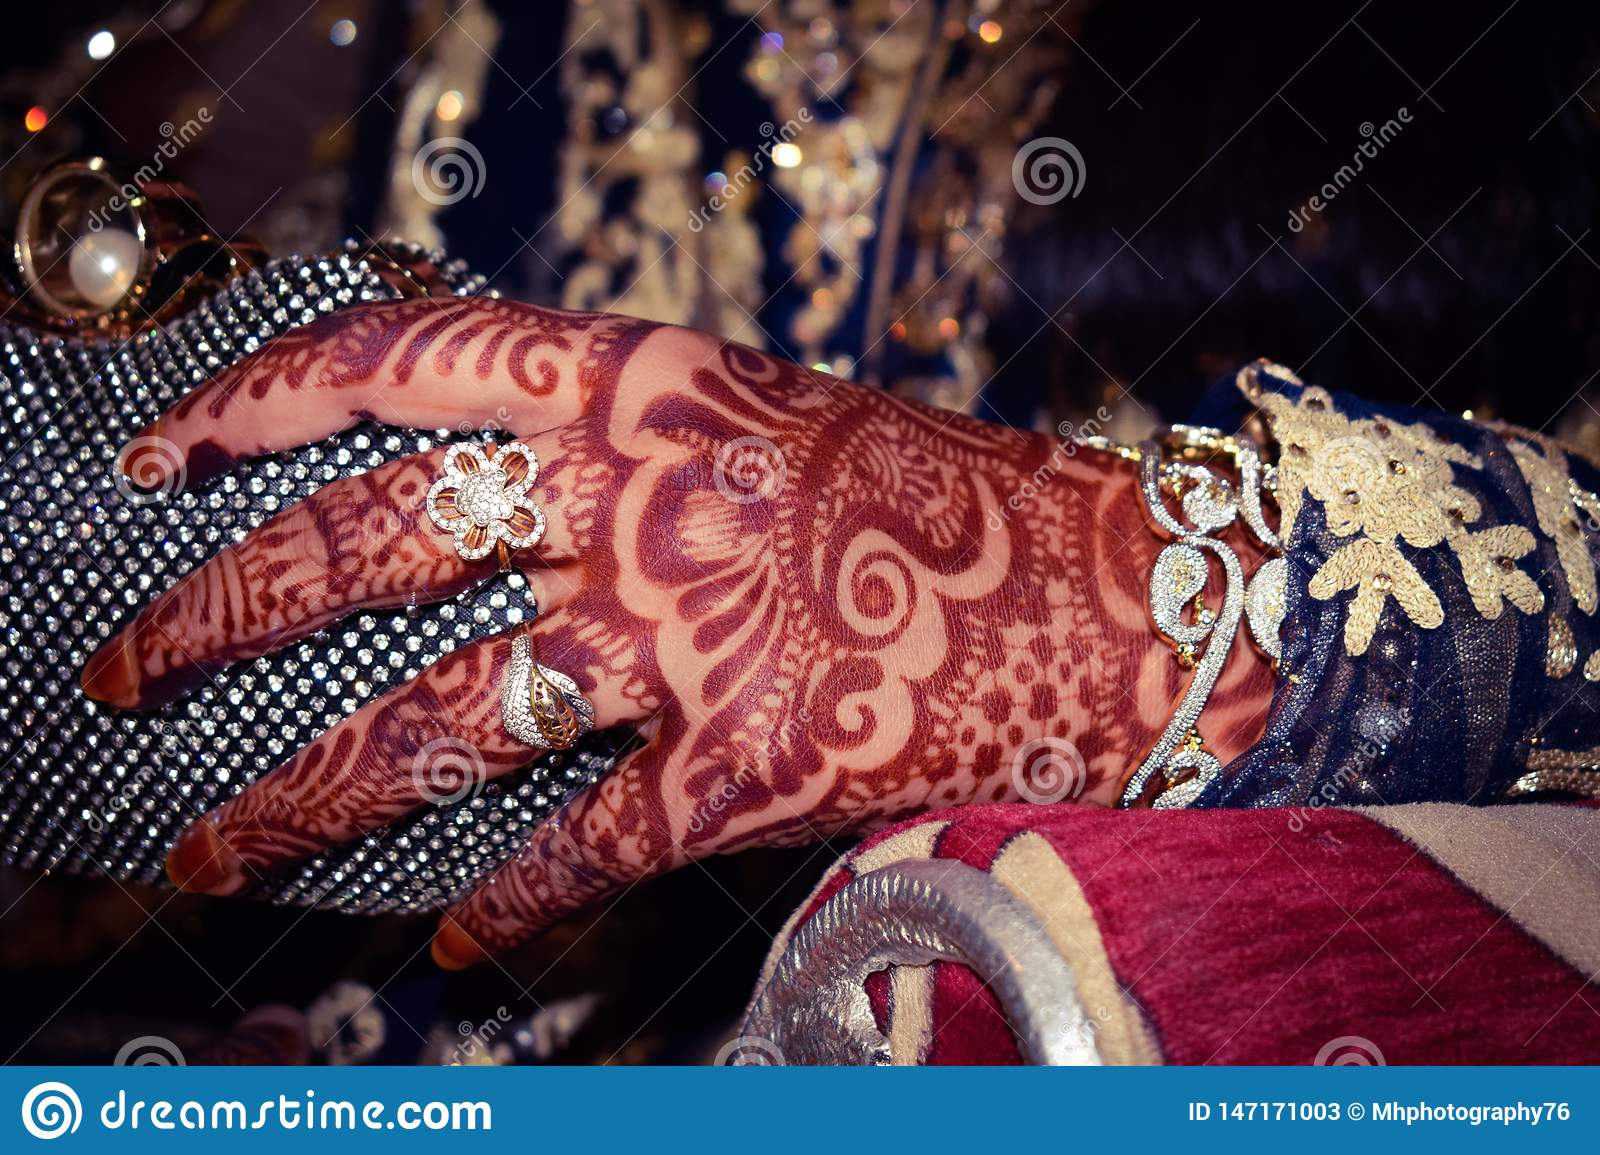 Hands of the bride with heena and gold ornaments. Indian marriage and Pakistani are expensive.